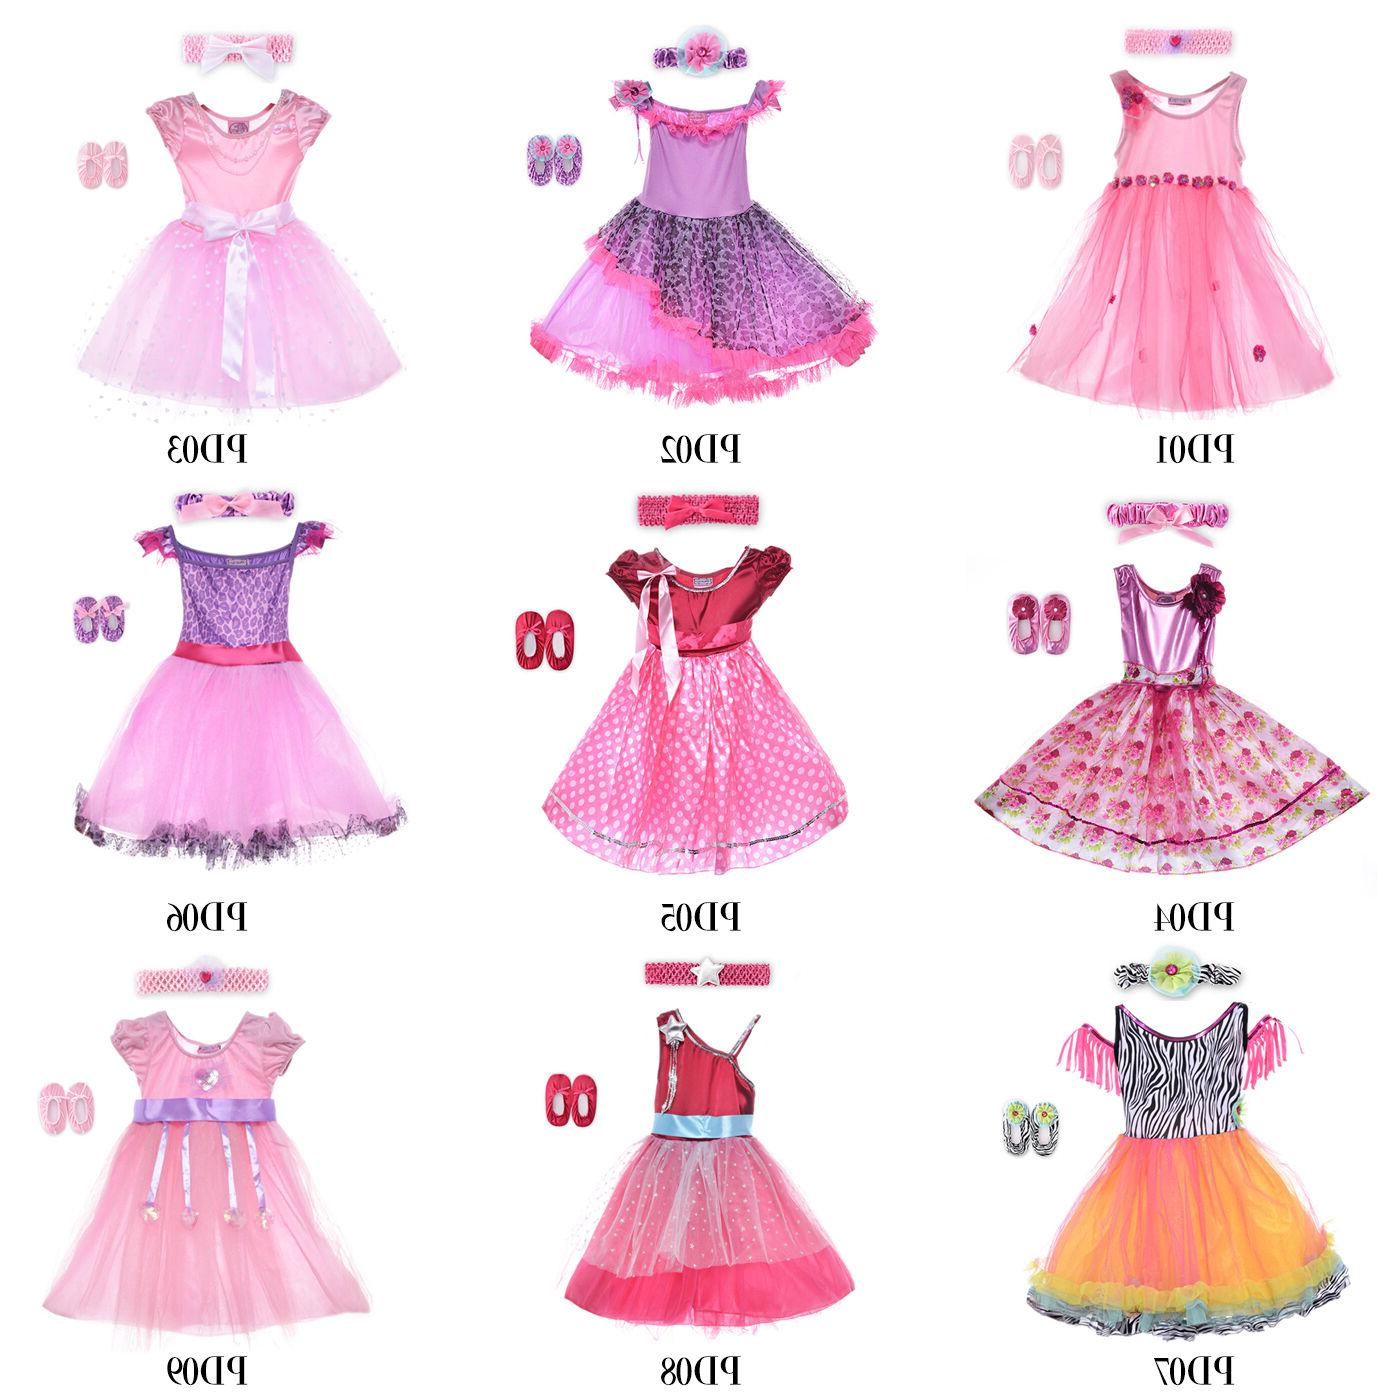 HBB Kids Girl's Princess Dress Up Dance Costume With Headban